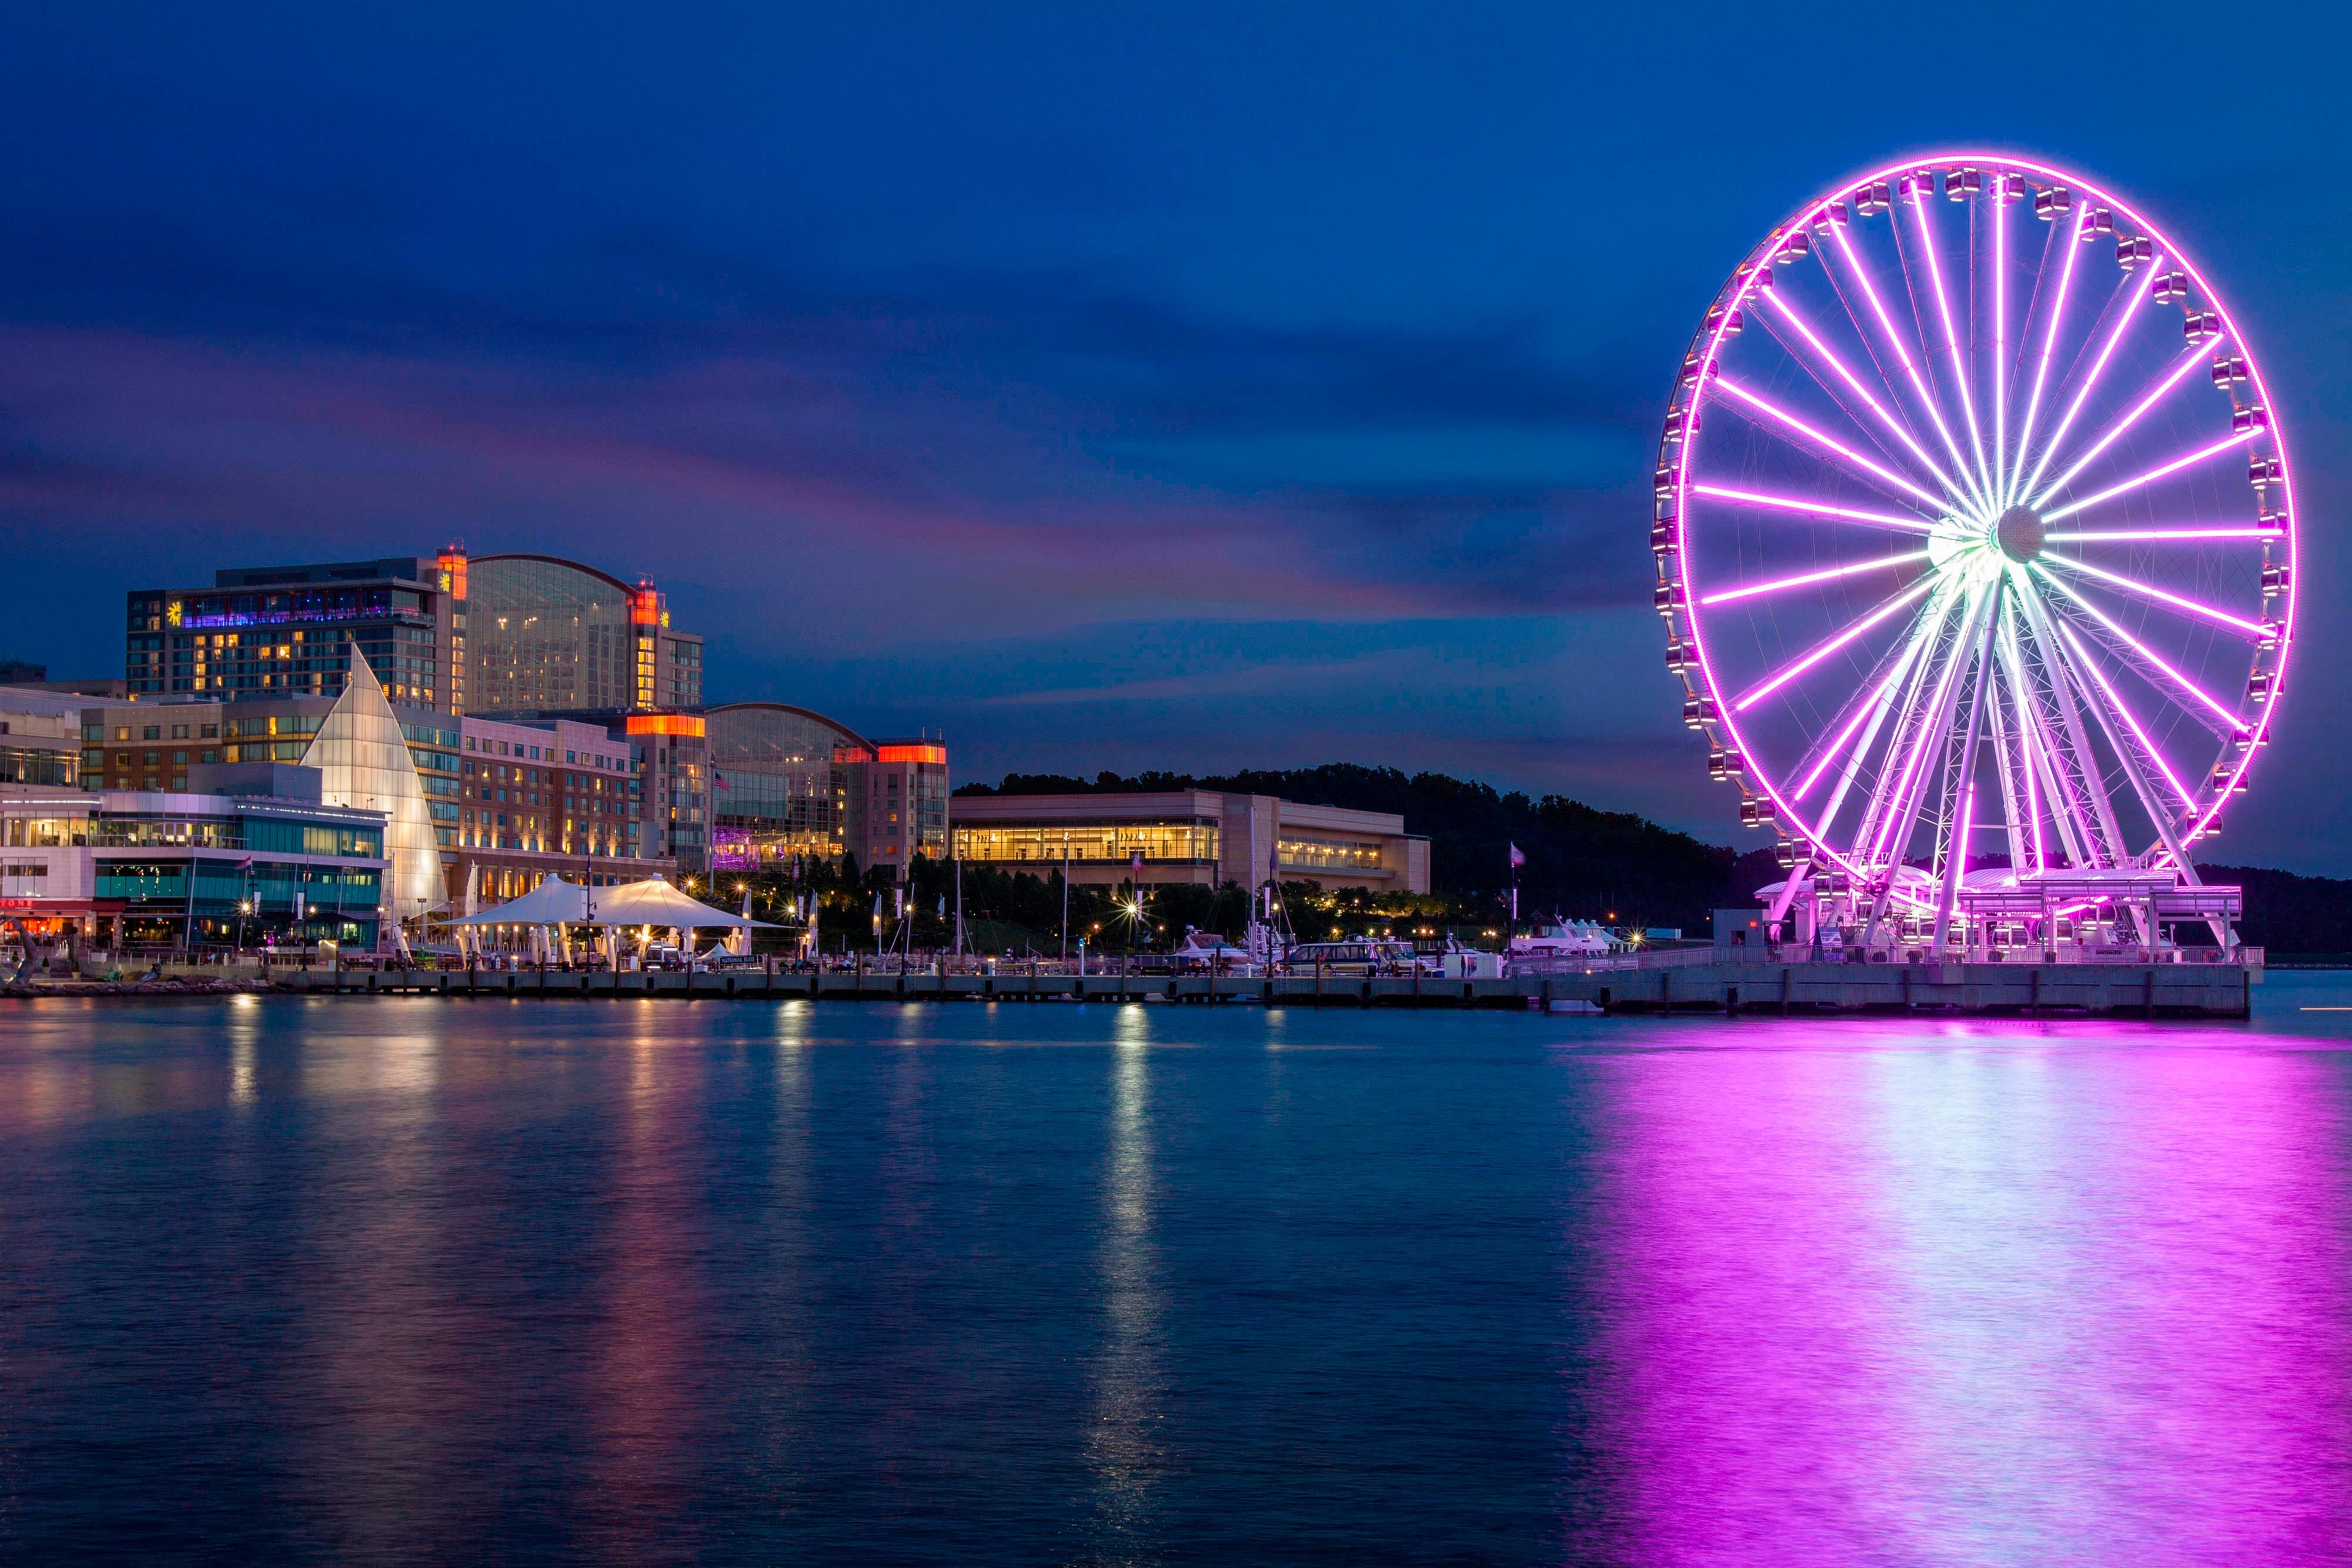 Exterior of Gaylord National Resort & Capital Wheel